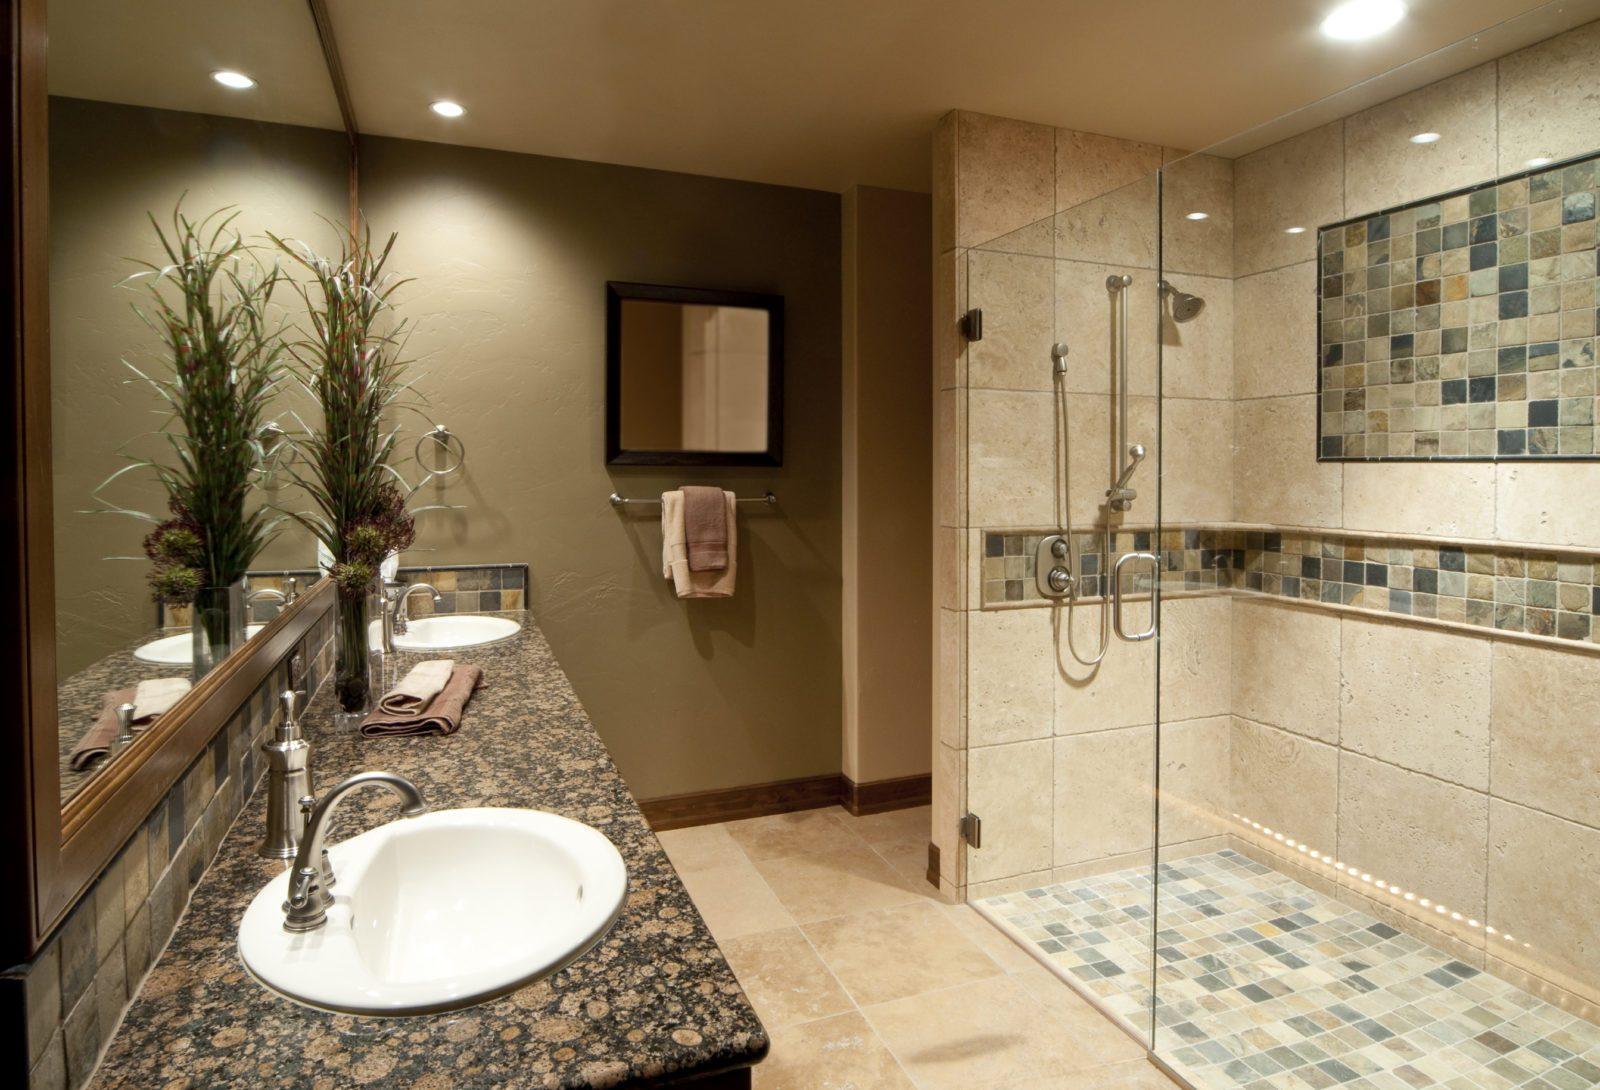 designs rectangular images ideas bathroom makeover inspiring remodel on about small pinterest